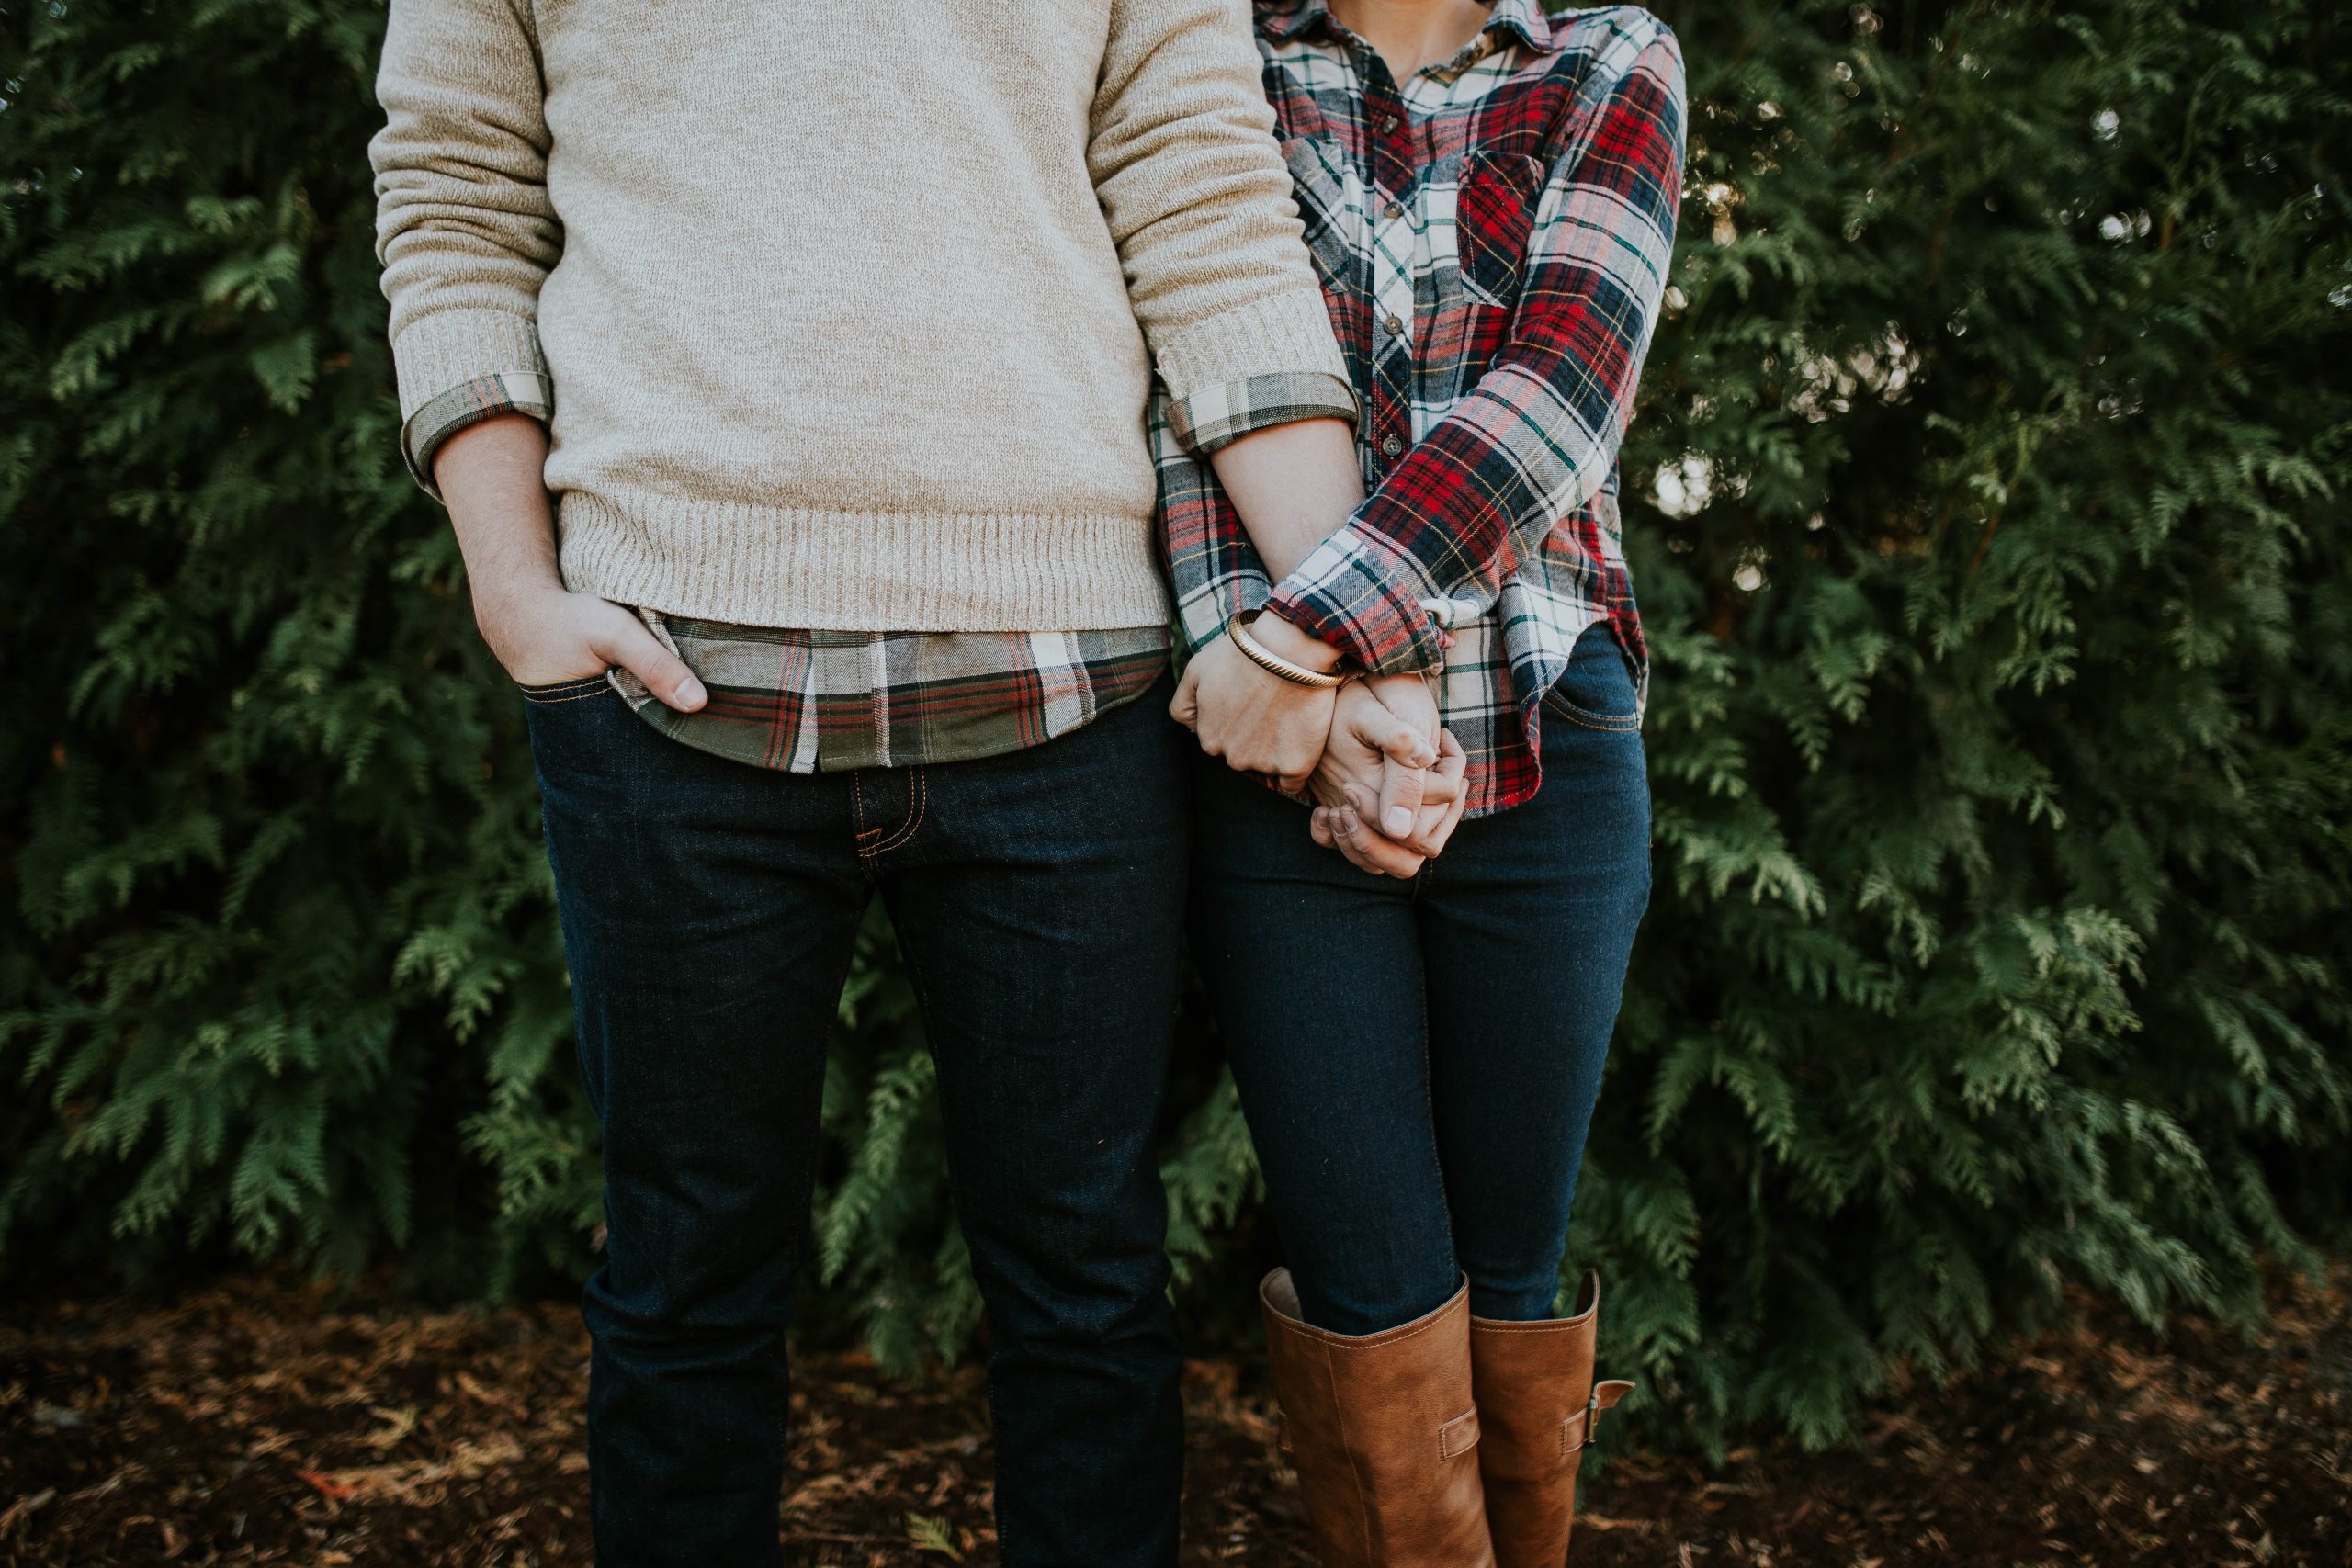 Married Couples Retreat—February 23-24